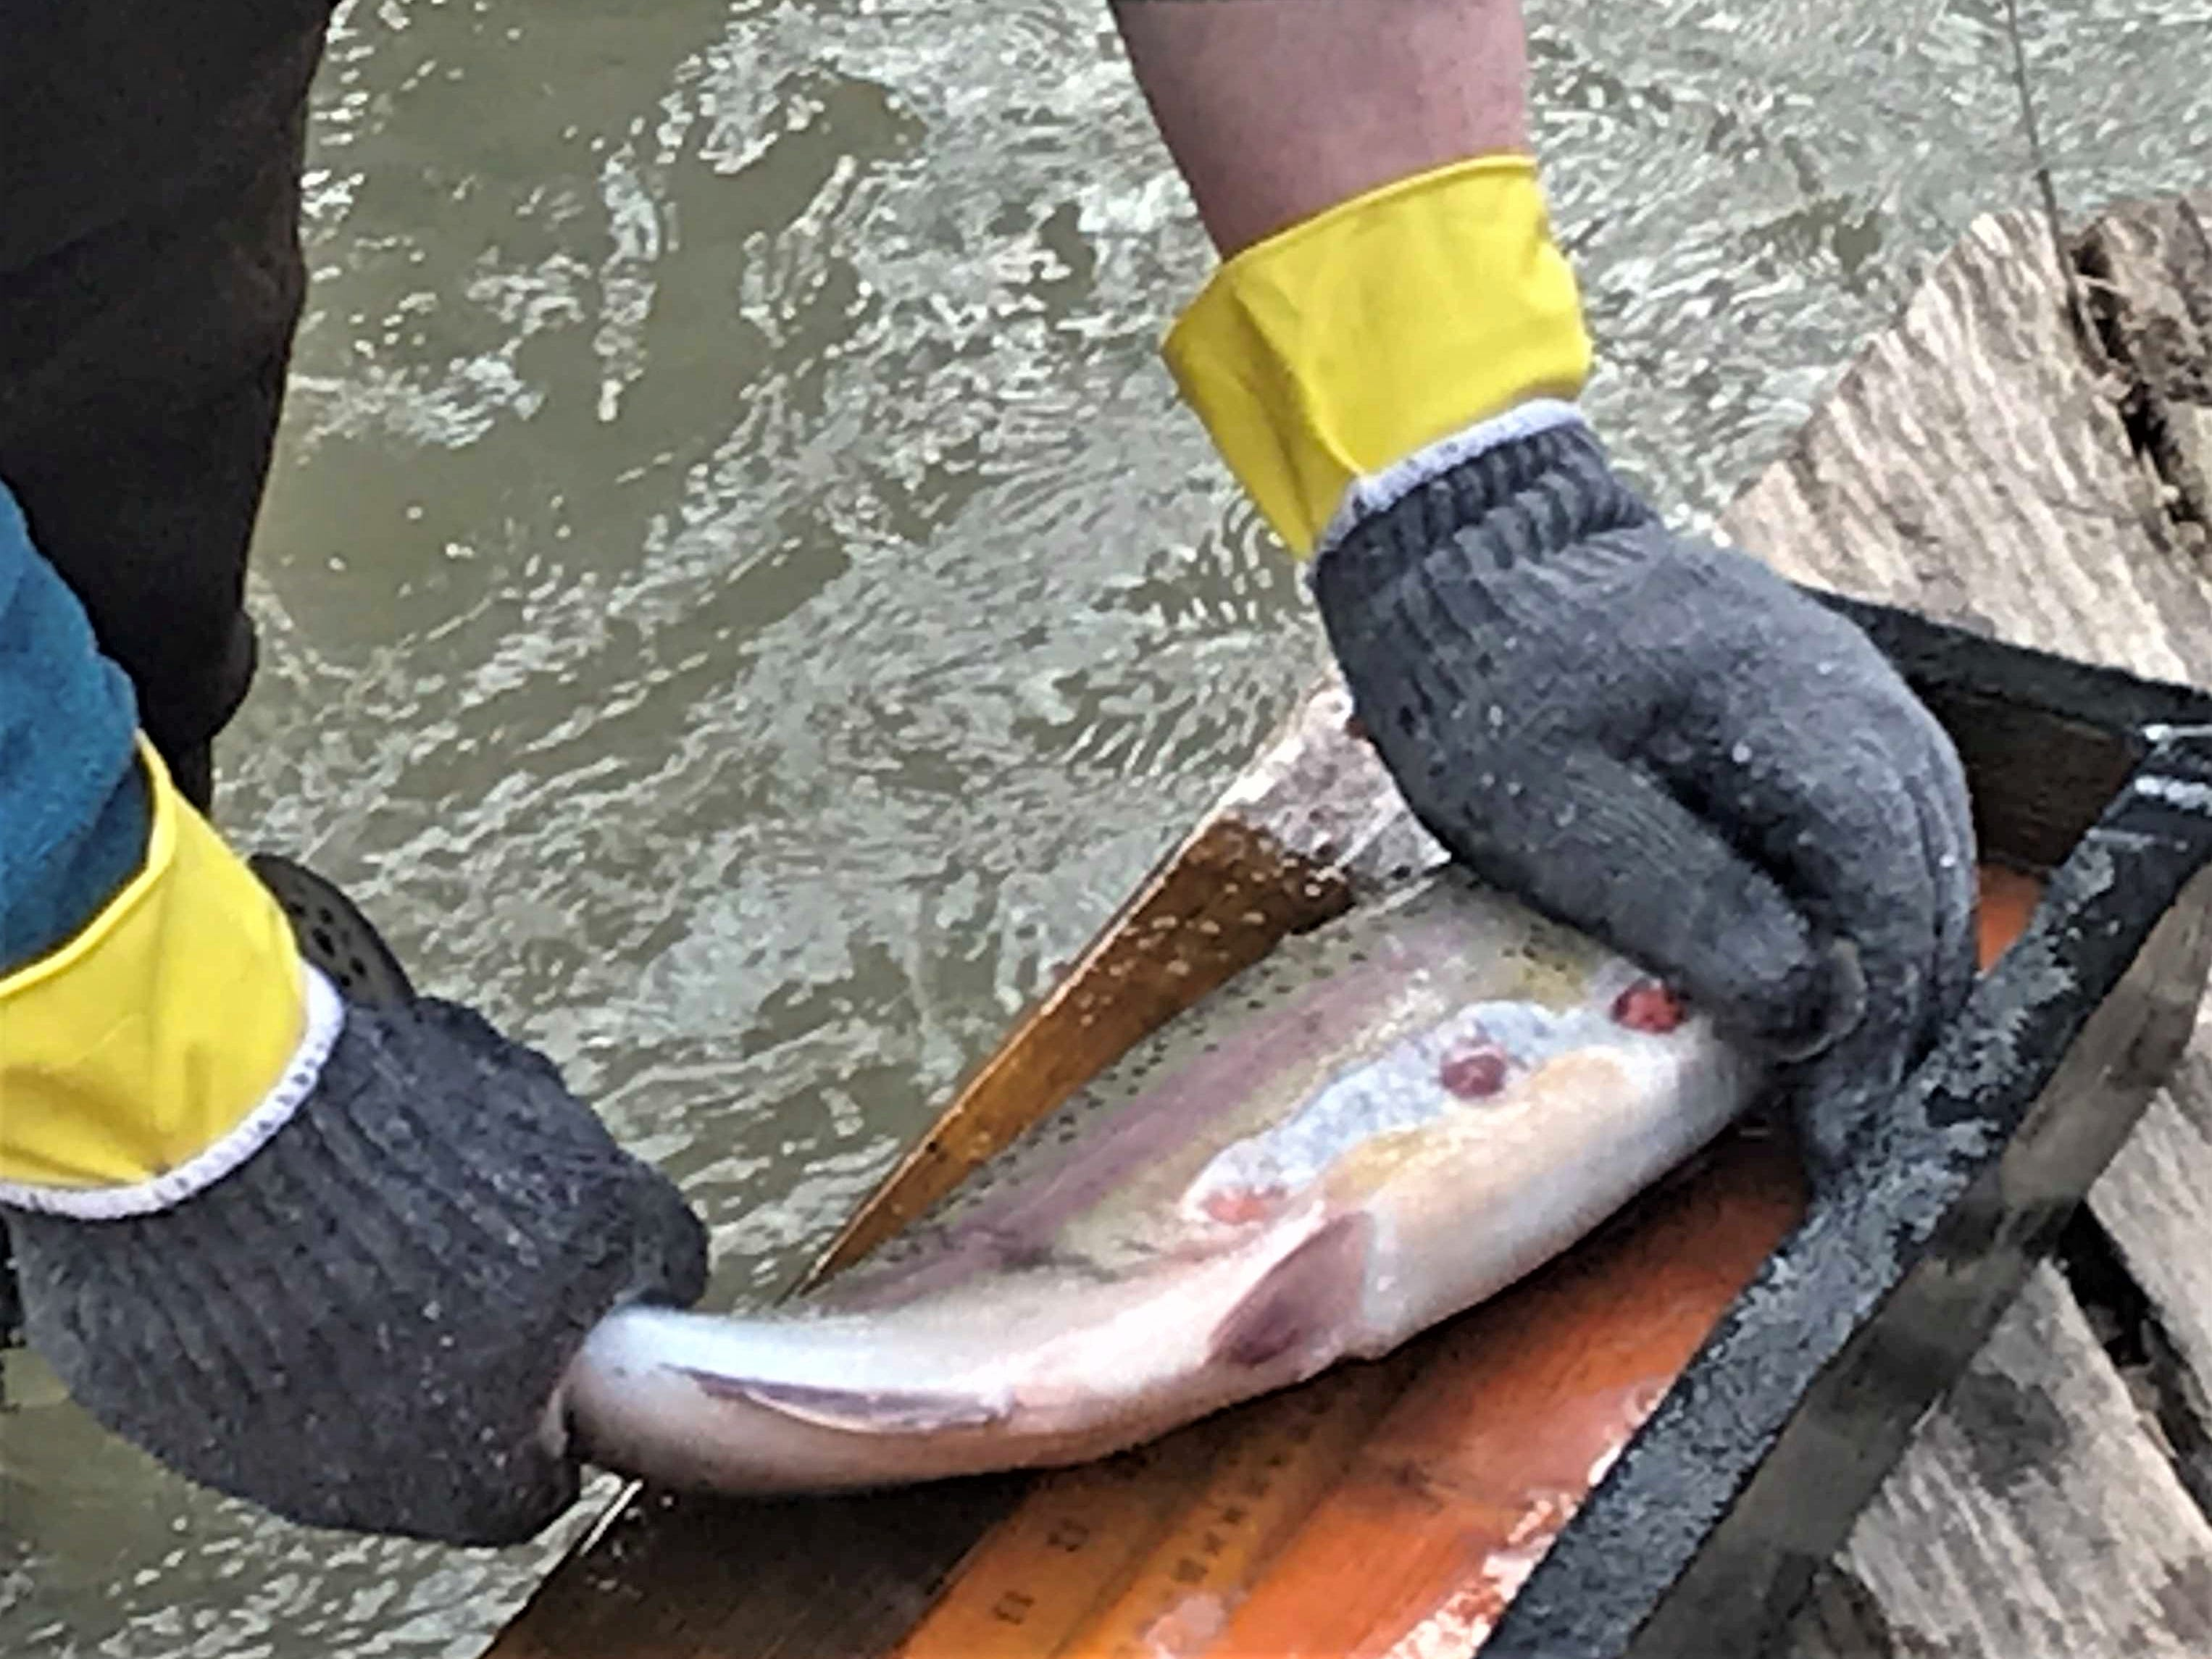 Many of the rainbow trout examined by DEC during Monday's sampling of Catharine Creek showed the scars of parasitic lamprey eels.